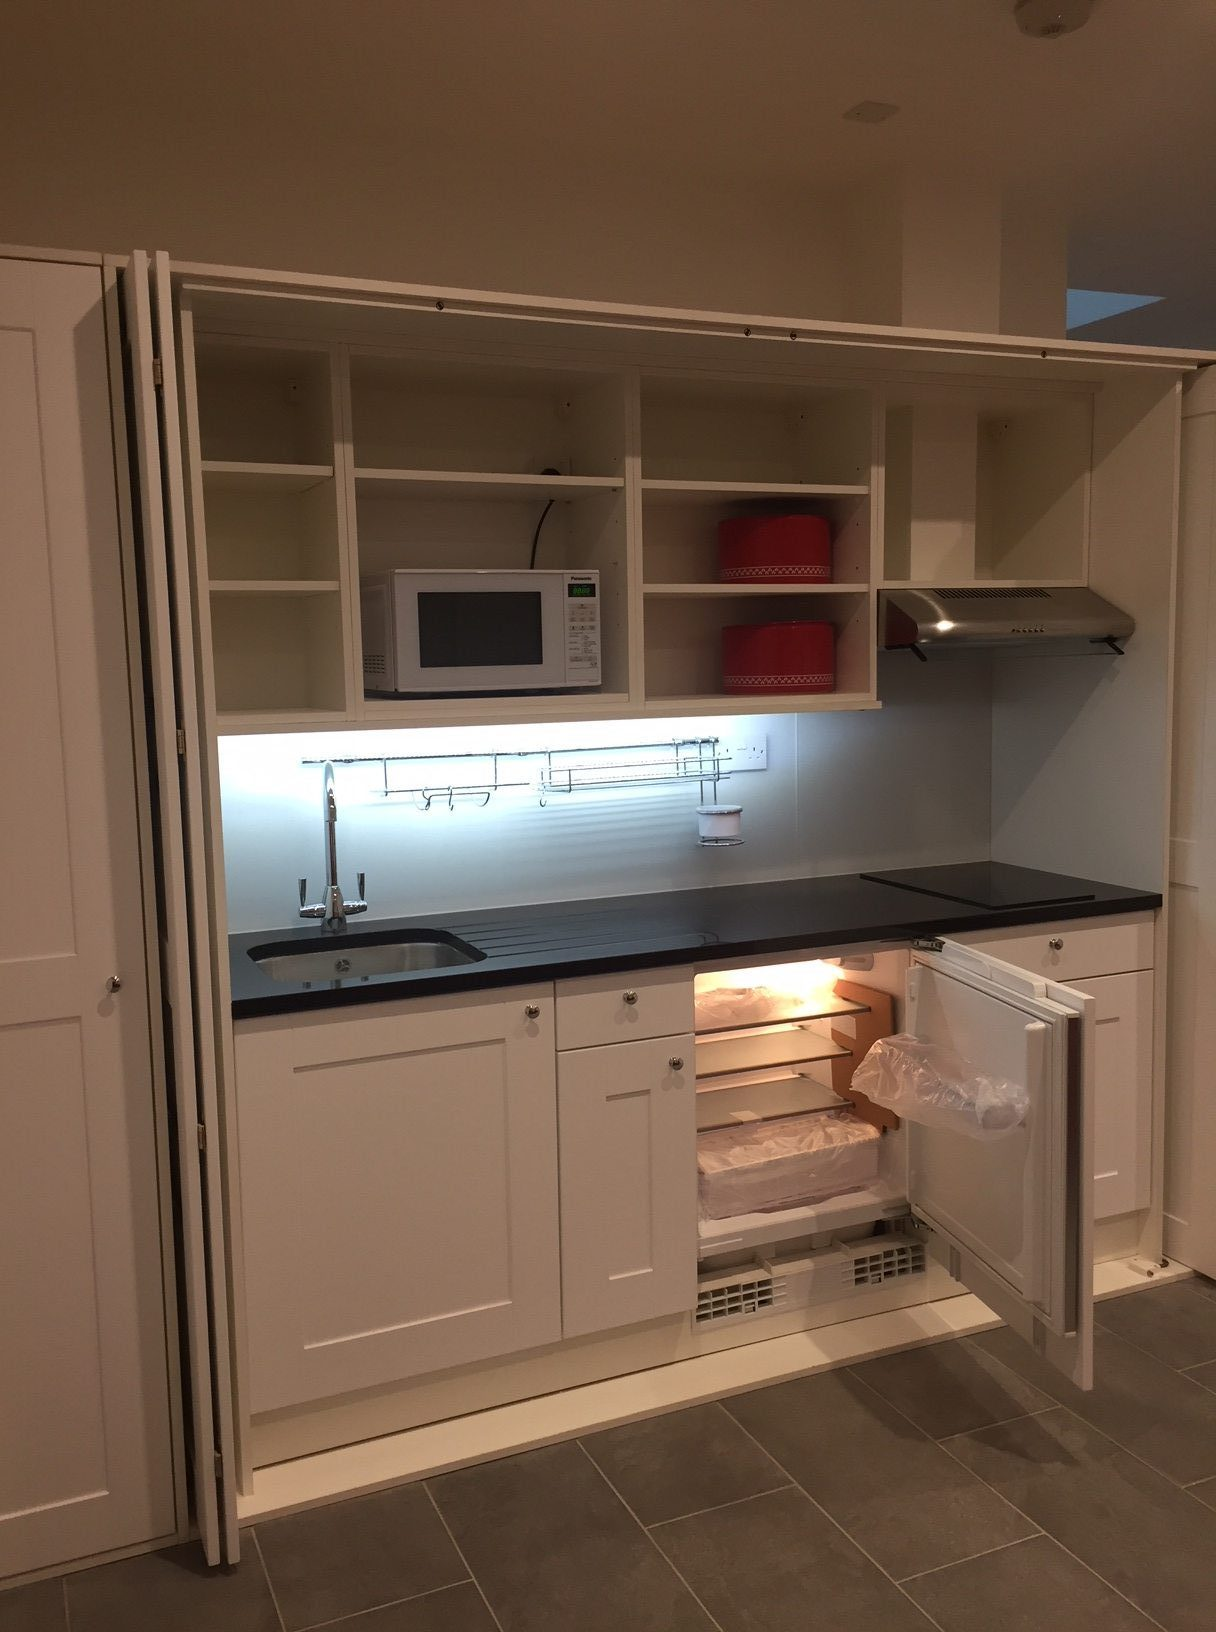 Mini Kitchens For Tiny Houses Mark Burton John Strand Mk